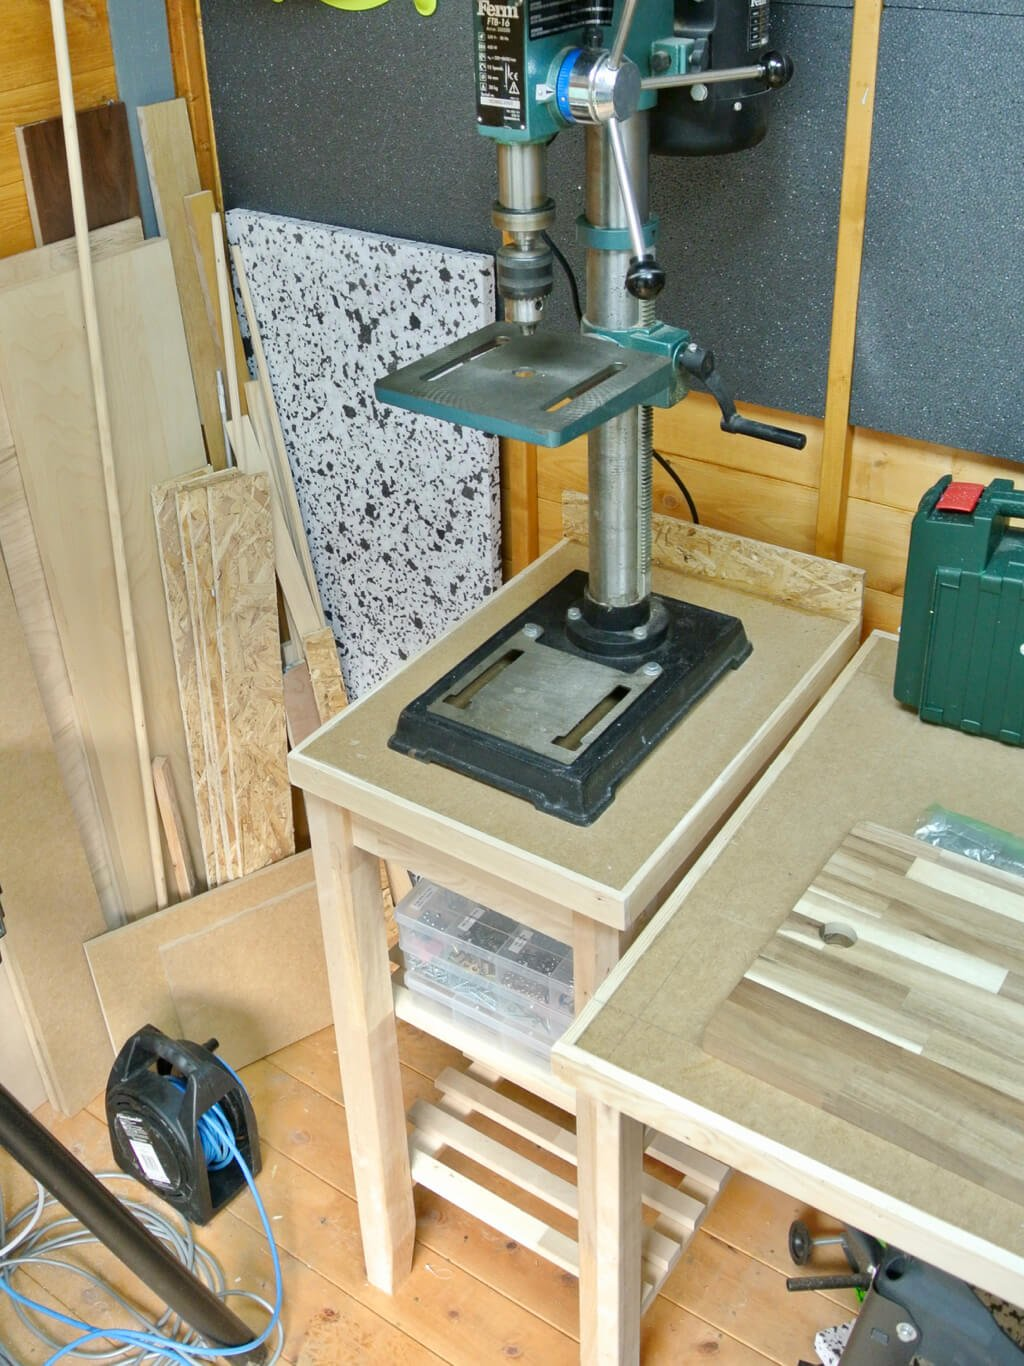 Workshop Tool Bench from BEKVAM Kitchen Trolley